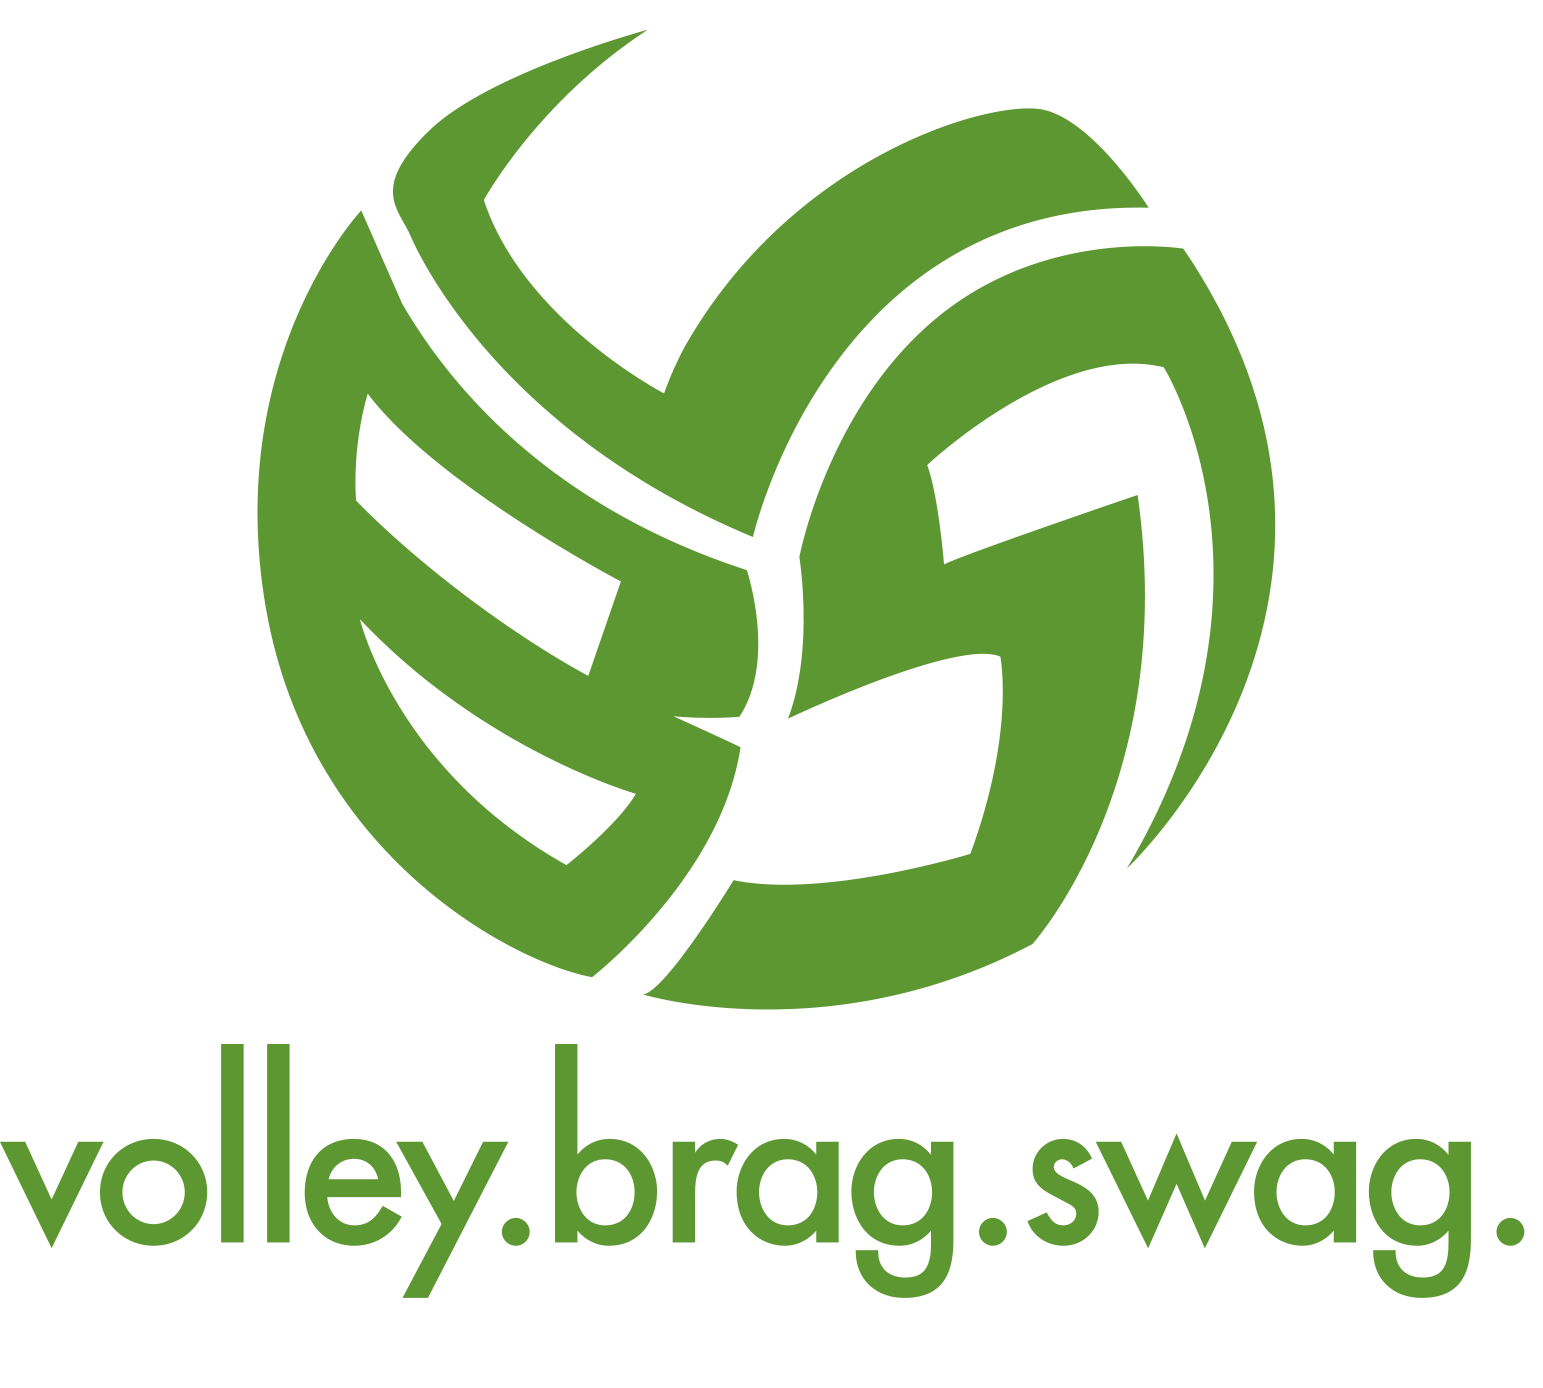 Volleyball T-Shirt Ideas By Volleybragswag Is Beast Inspired Attire created in 2013 by April Chapple. The Volleybragswag ball logo design.